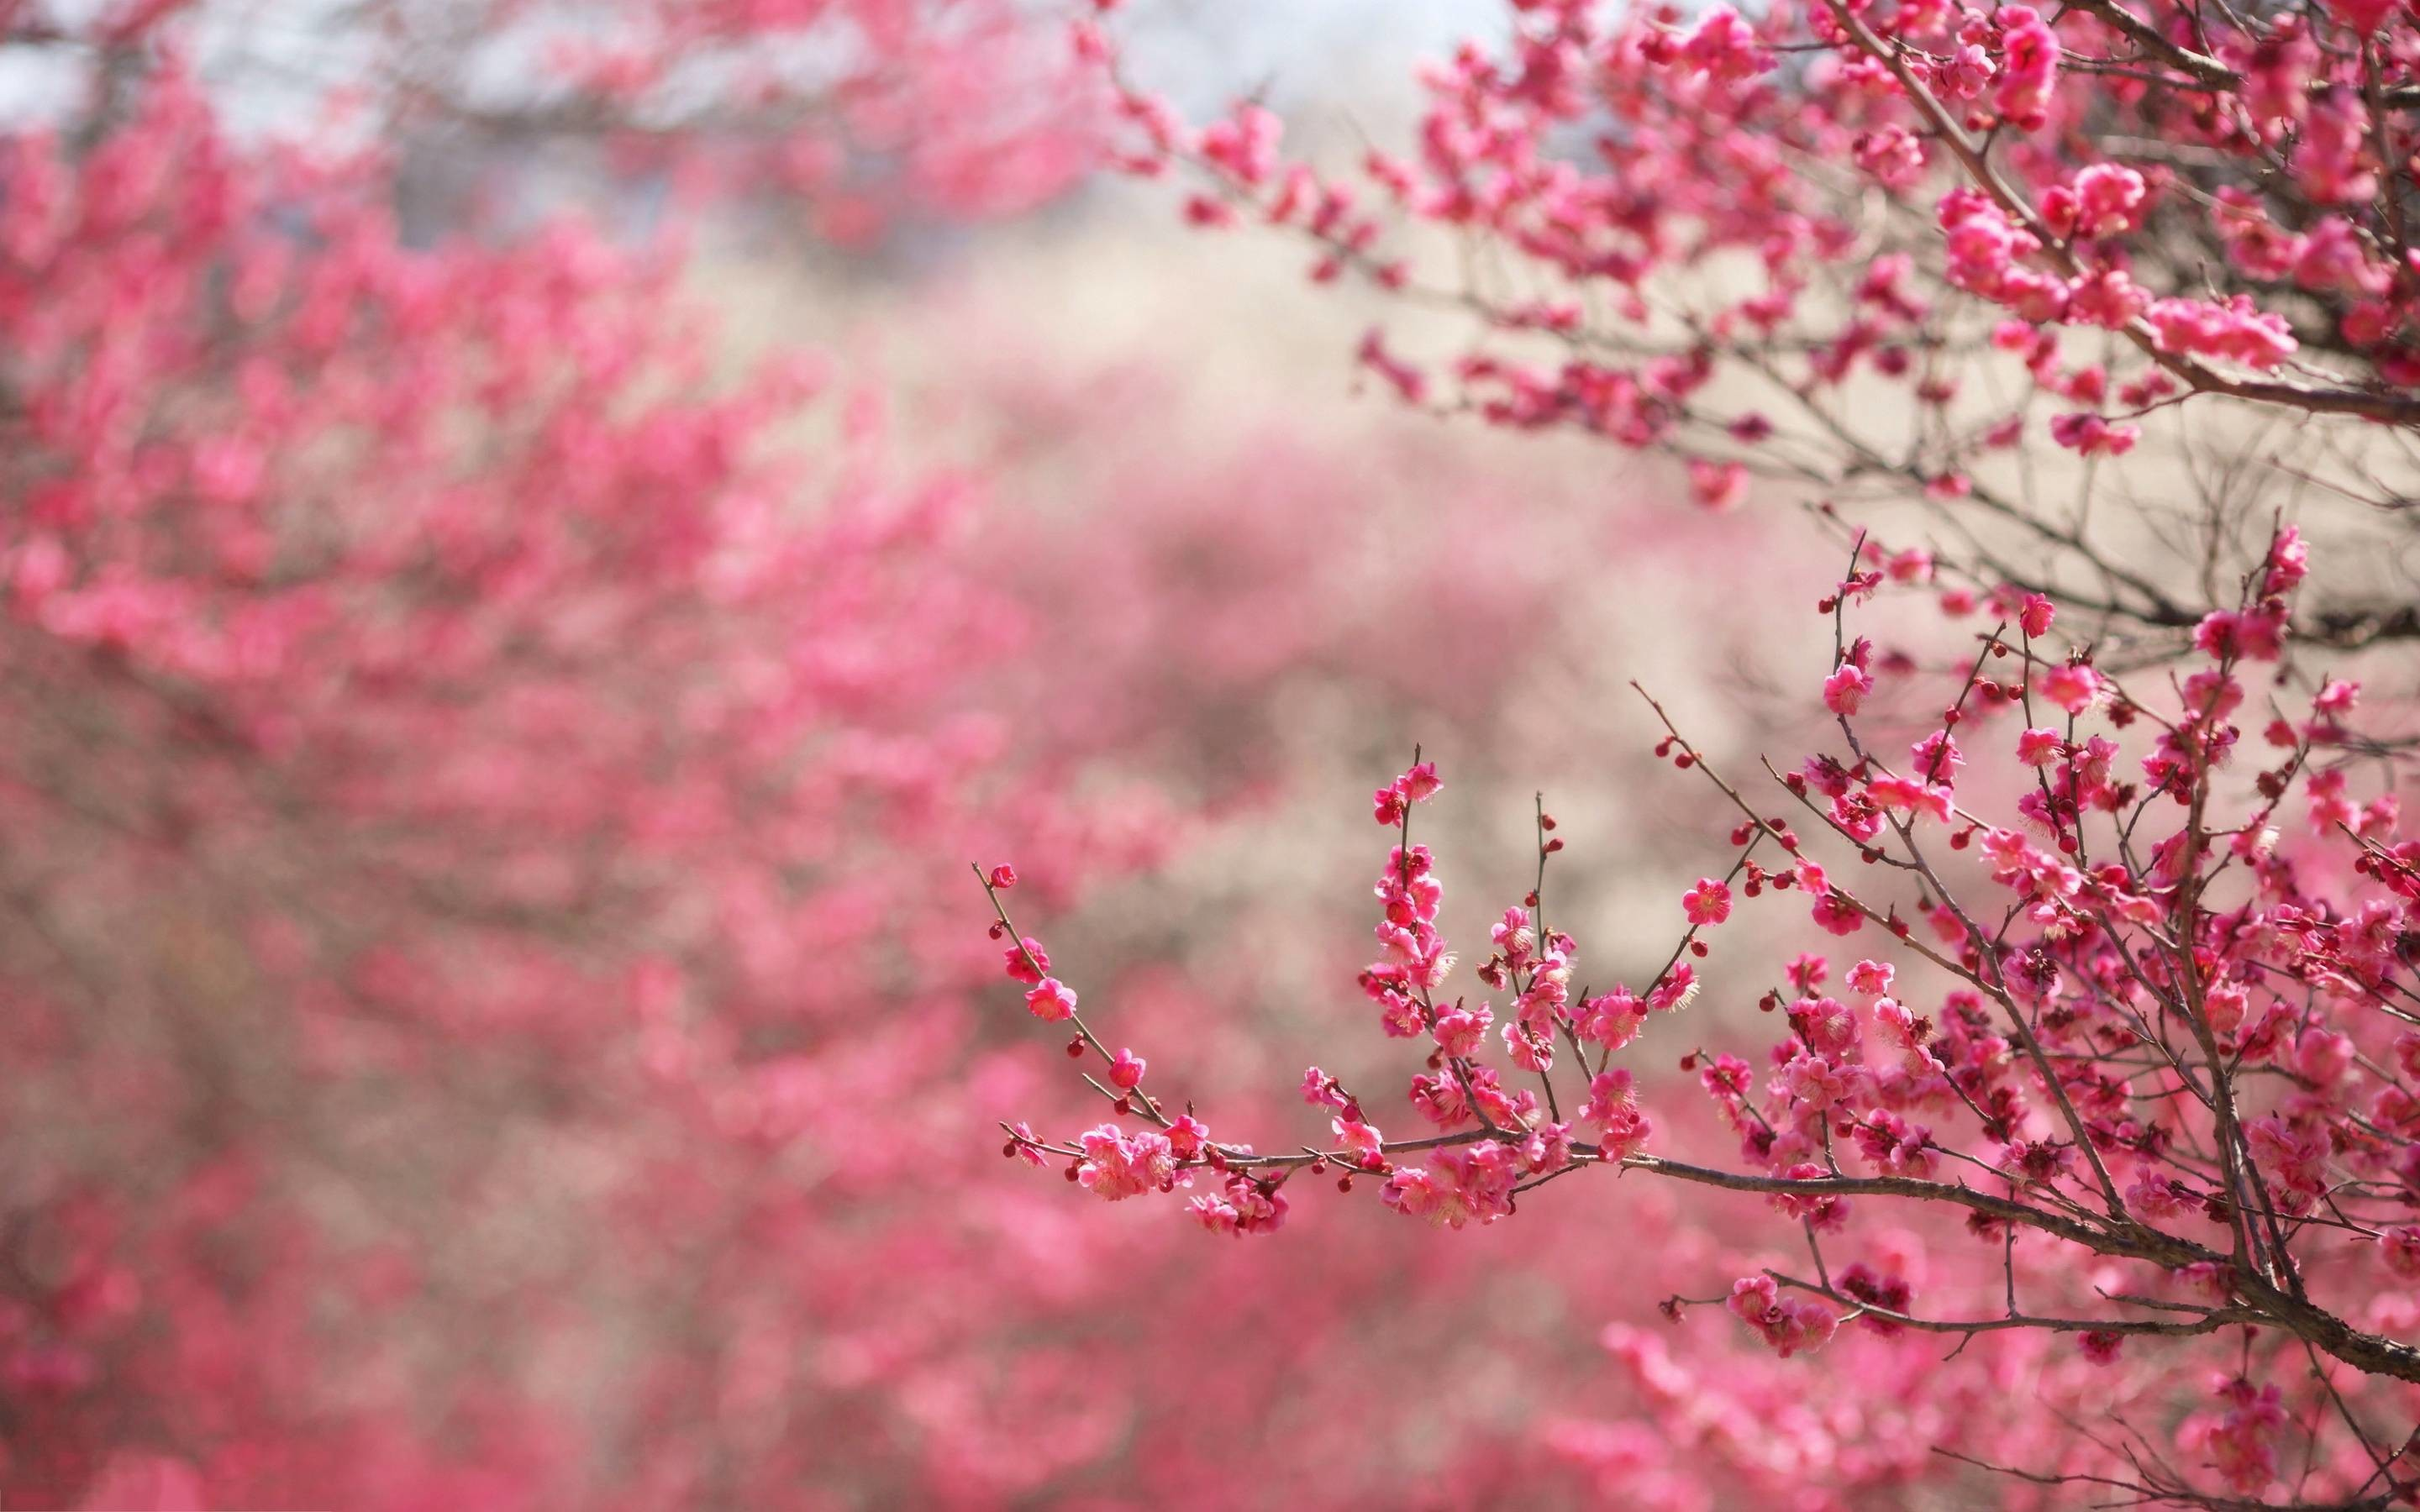 Wallpapers For > Pink Cherry Blossom Backgrounds